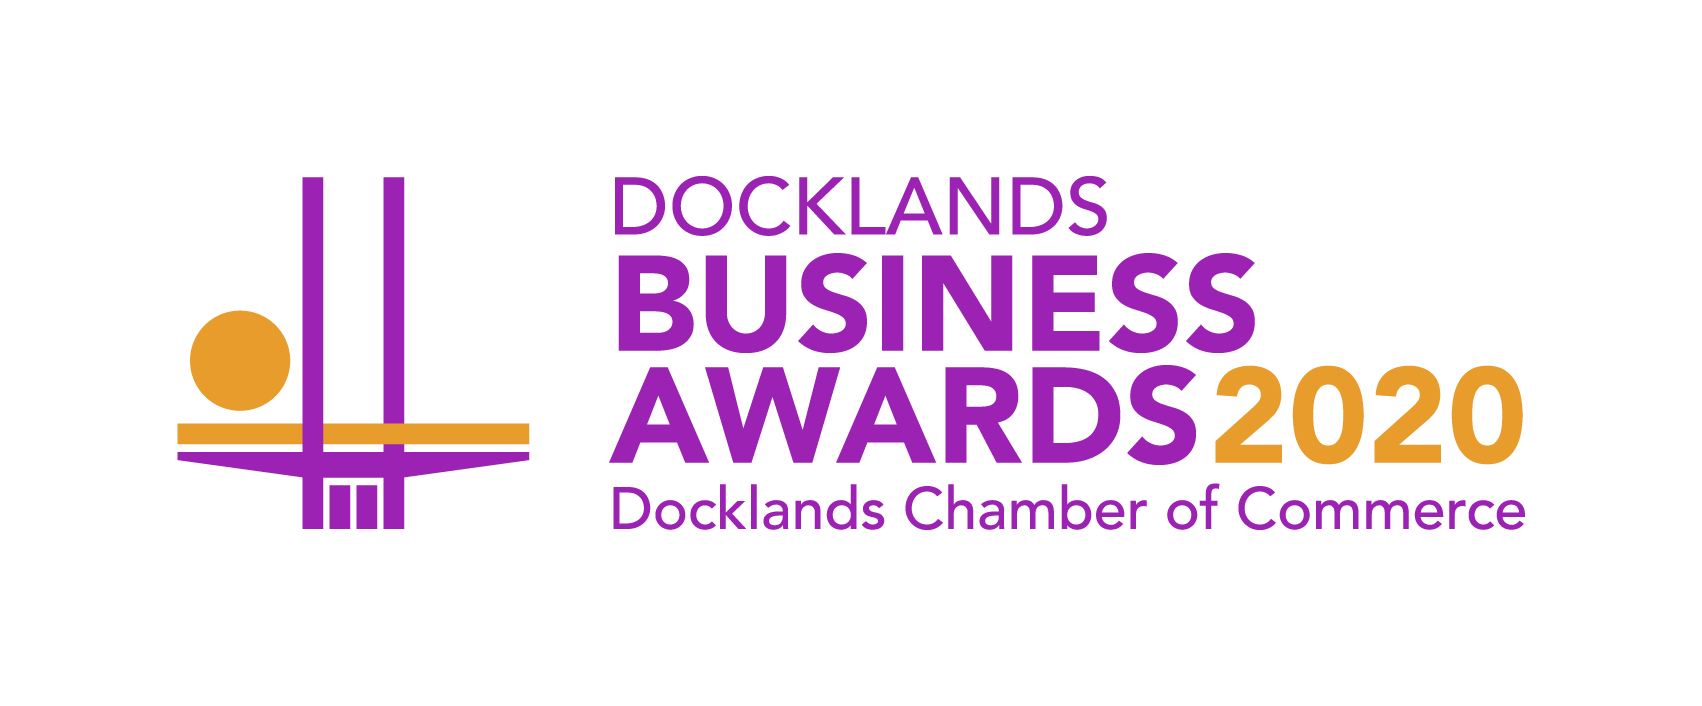 Docklands-Awards-Full-Color